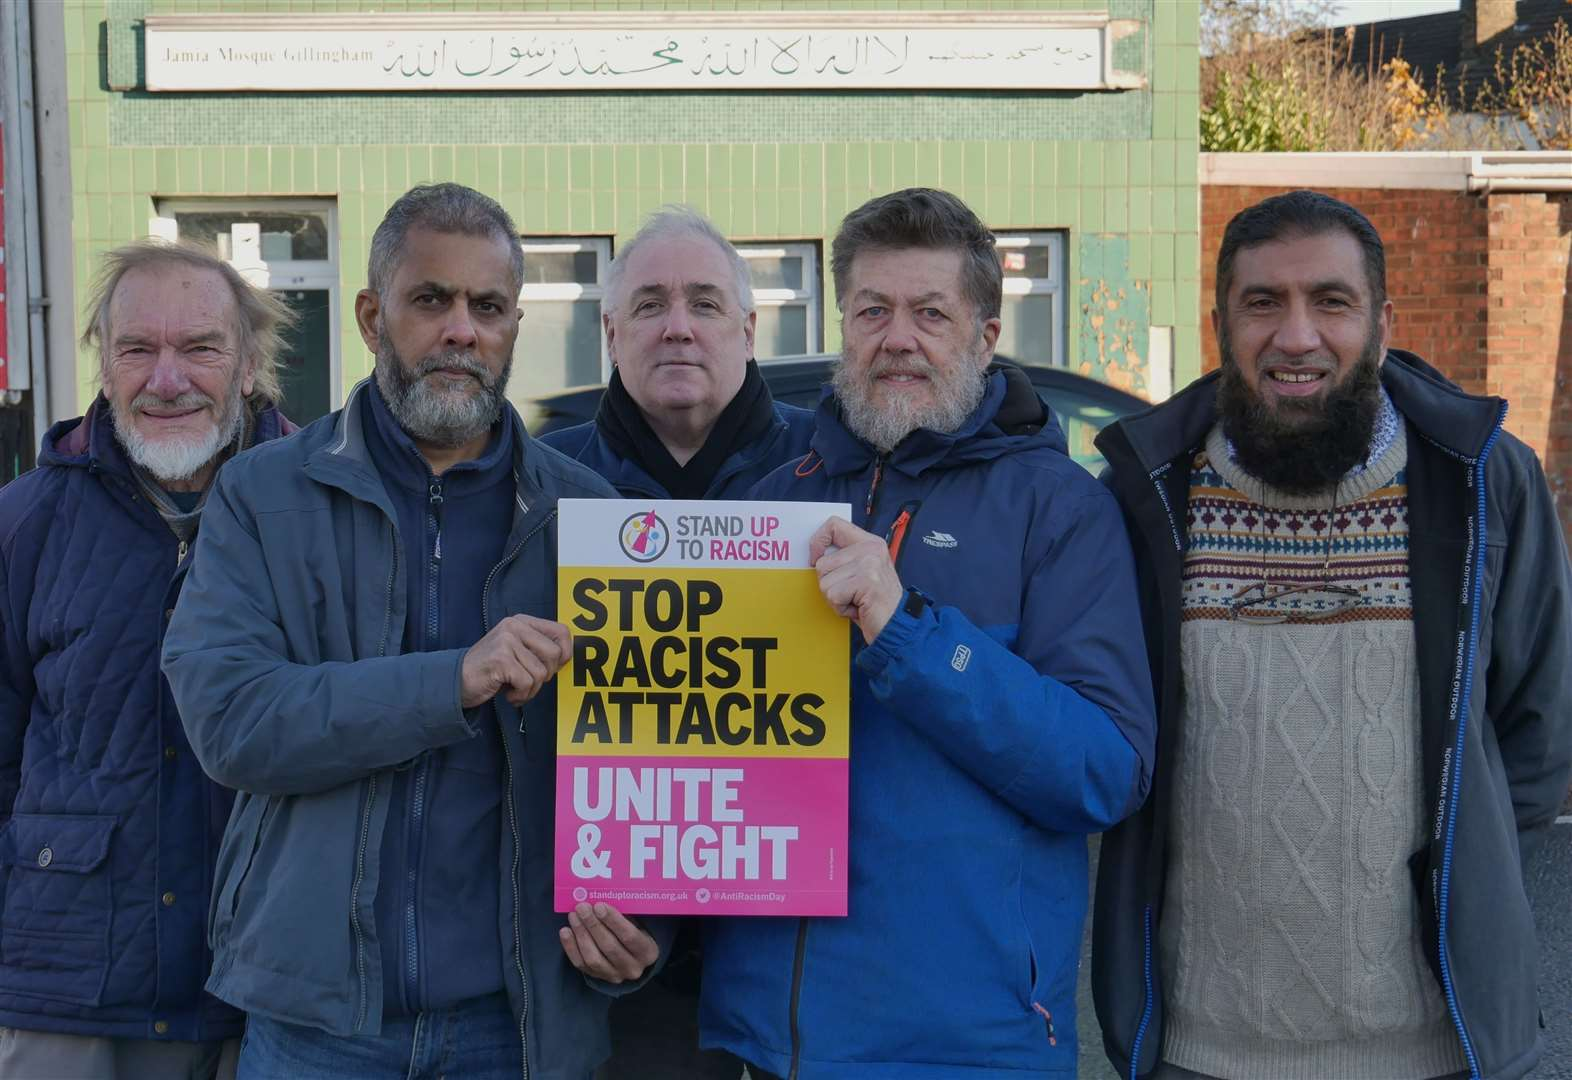 Plea for unity after racist attacks